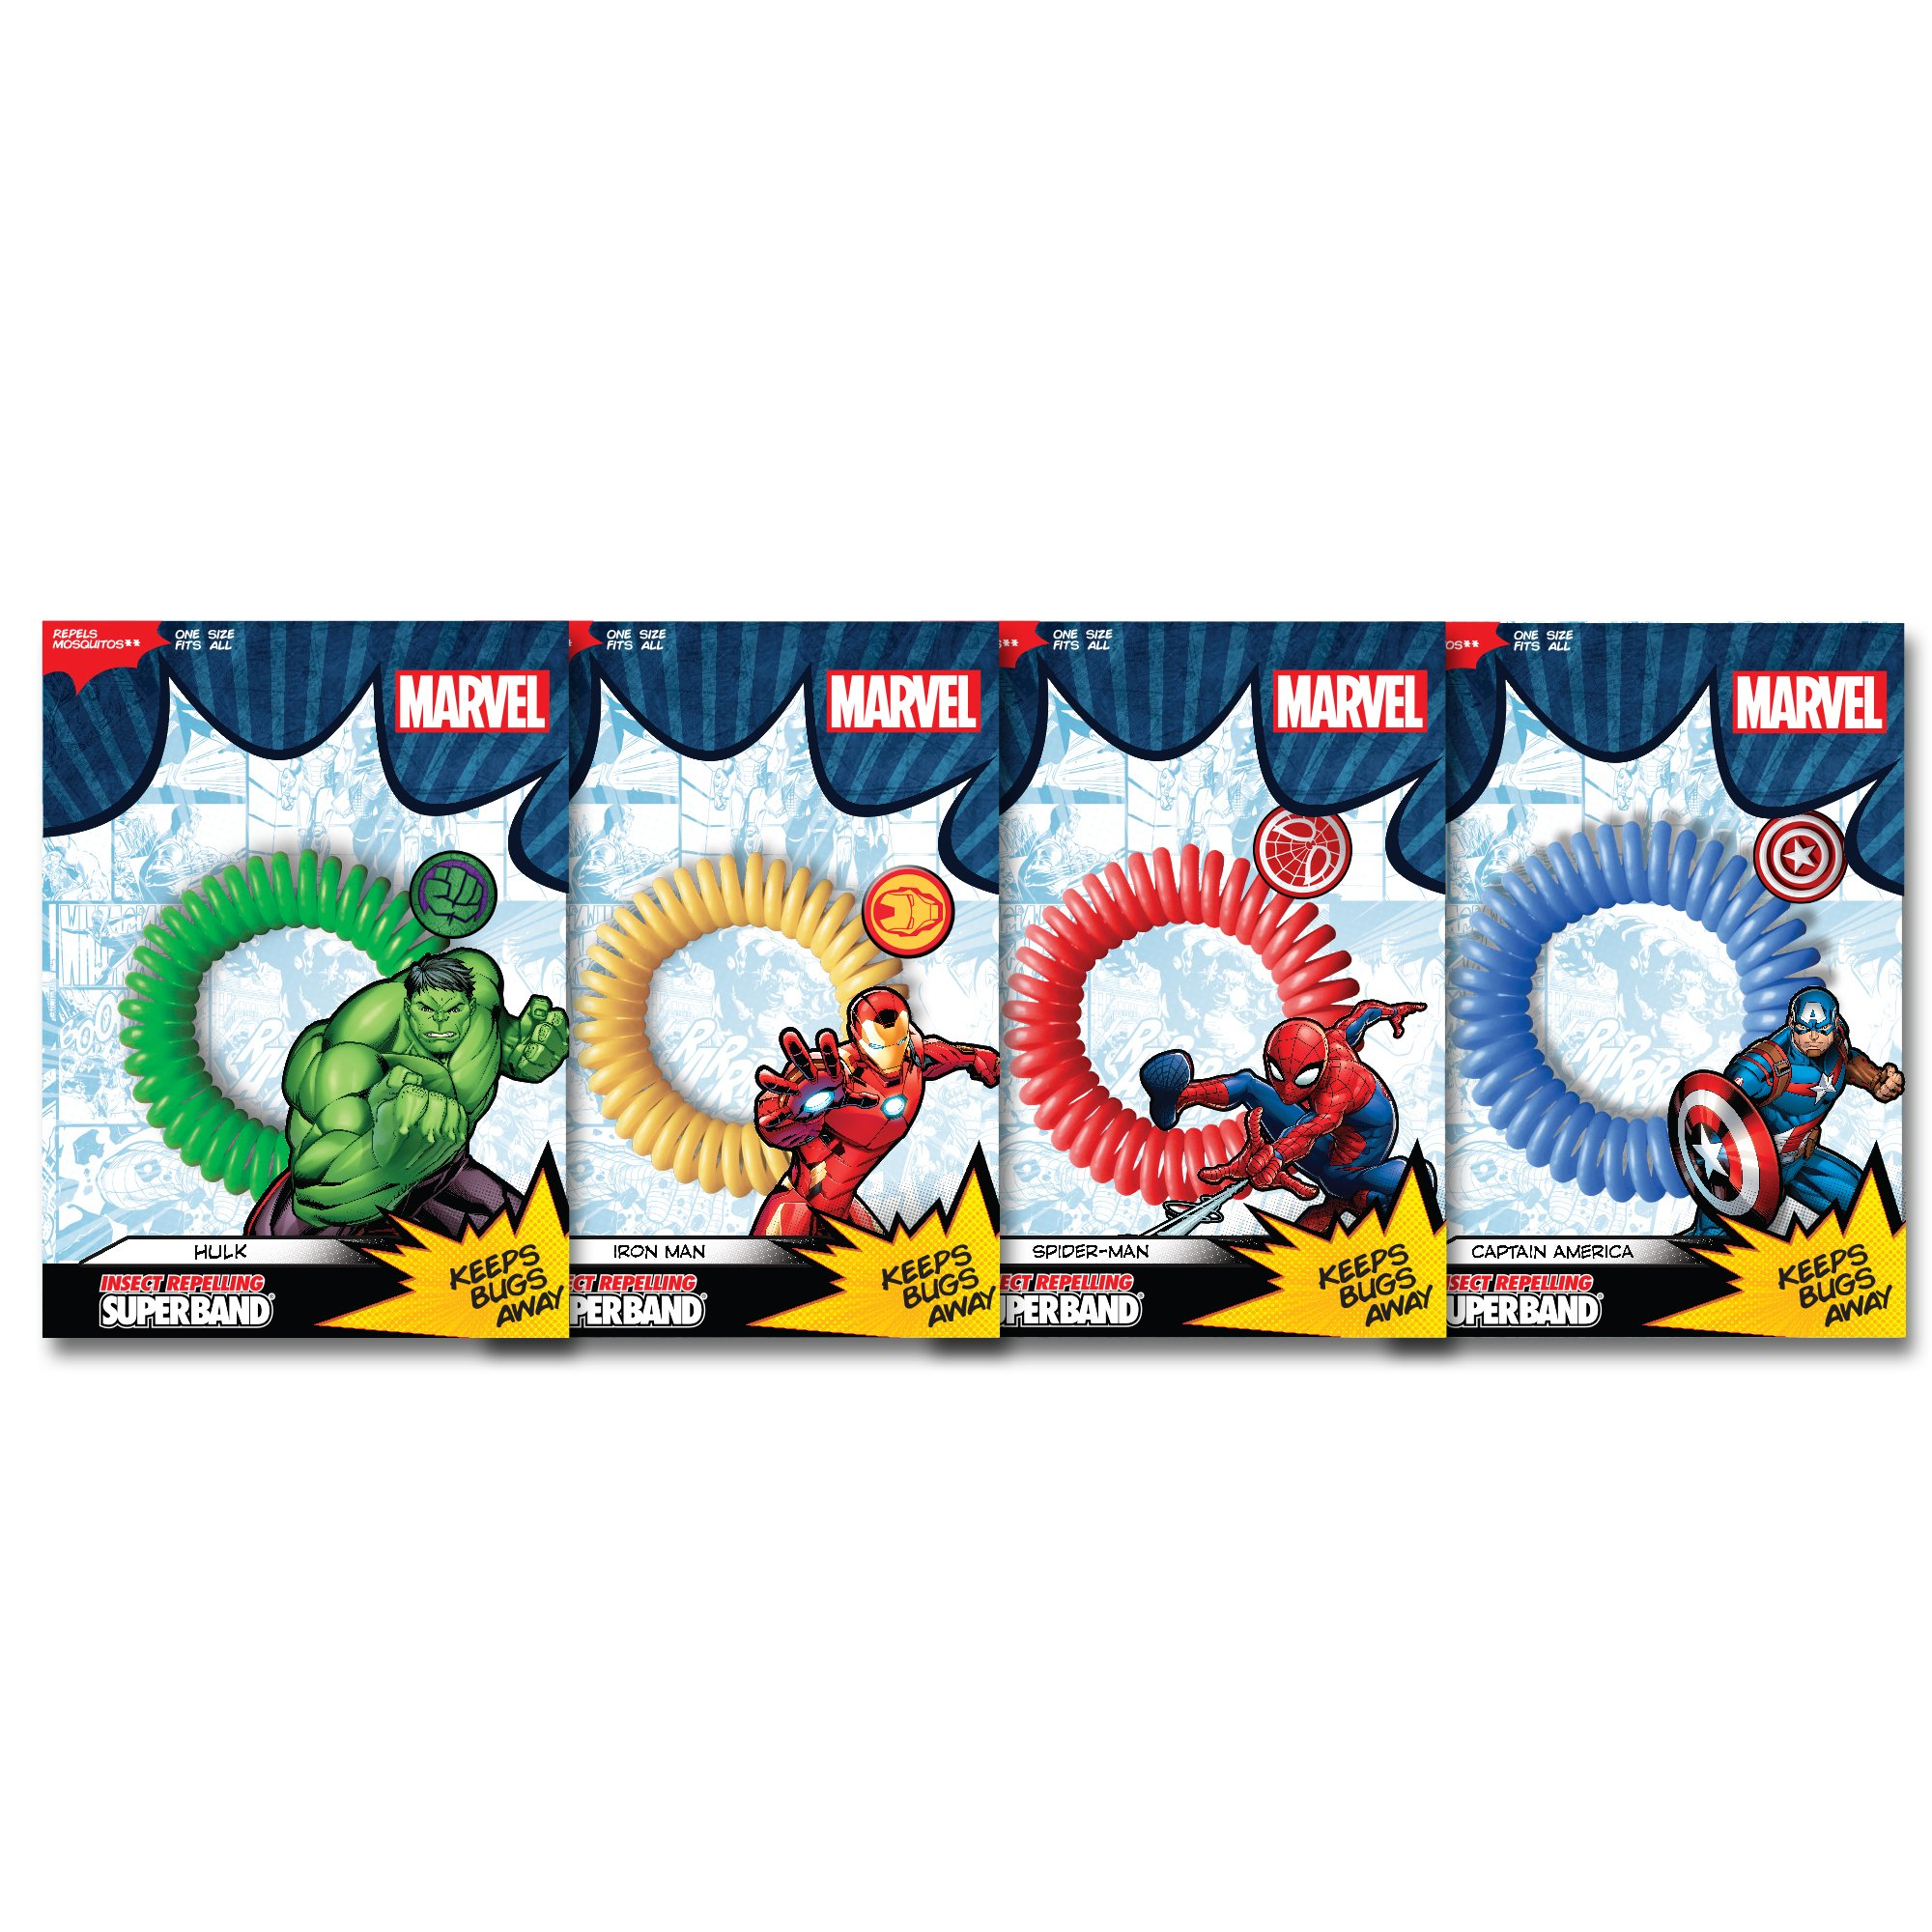 Superband MARVEL AVENGER Insect Repelling Wristbands with AWESOME Superhero Charms! (12-Pack)